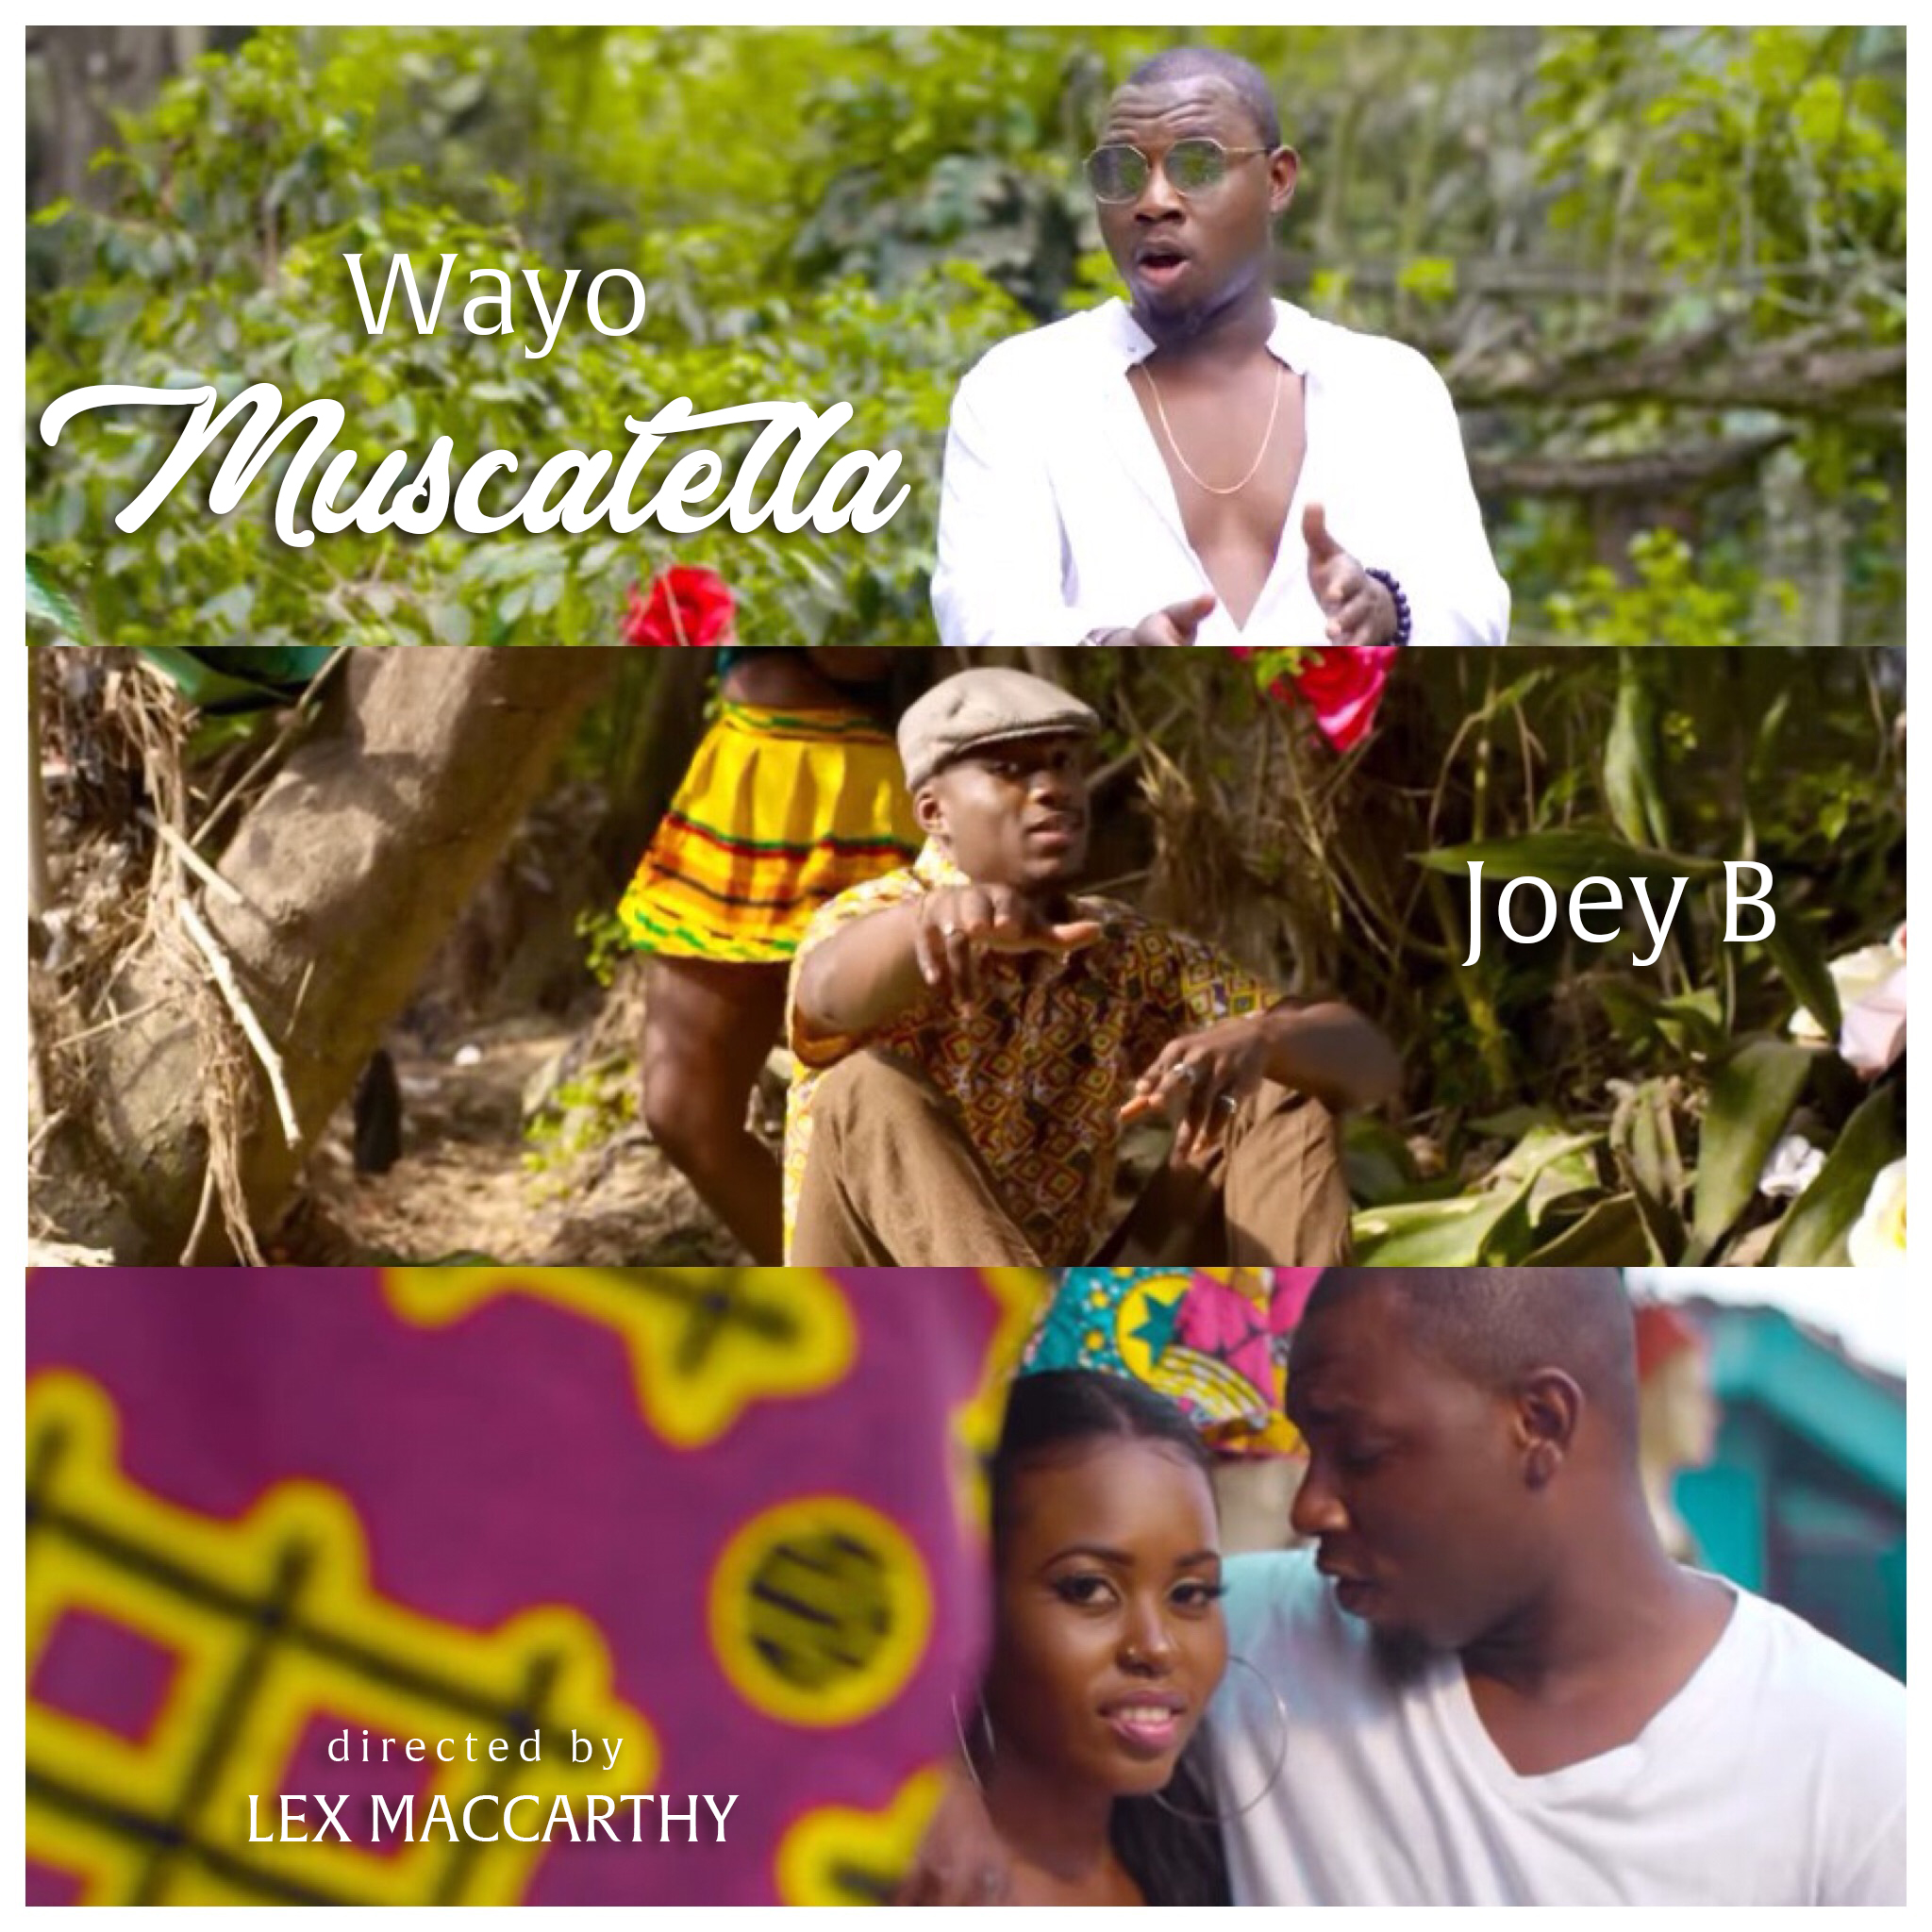 Listen Up: Wayo features Joey B on 'Muscatella'